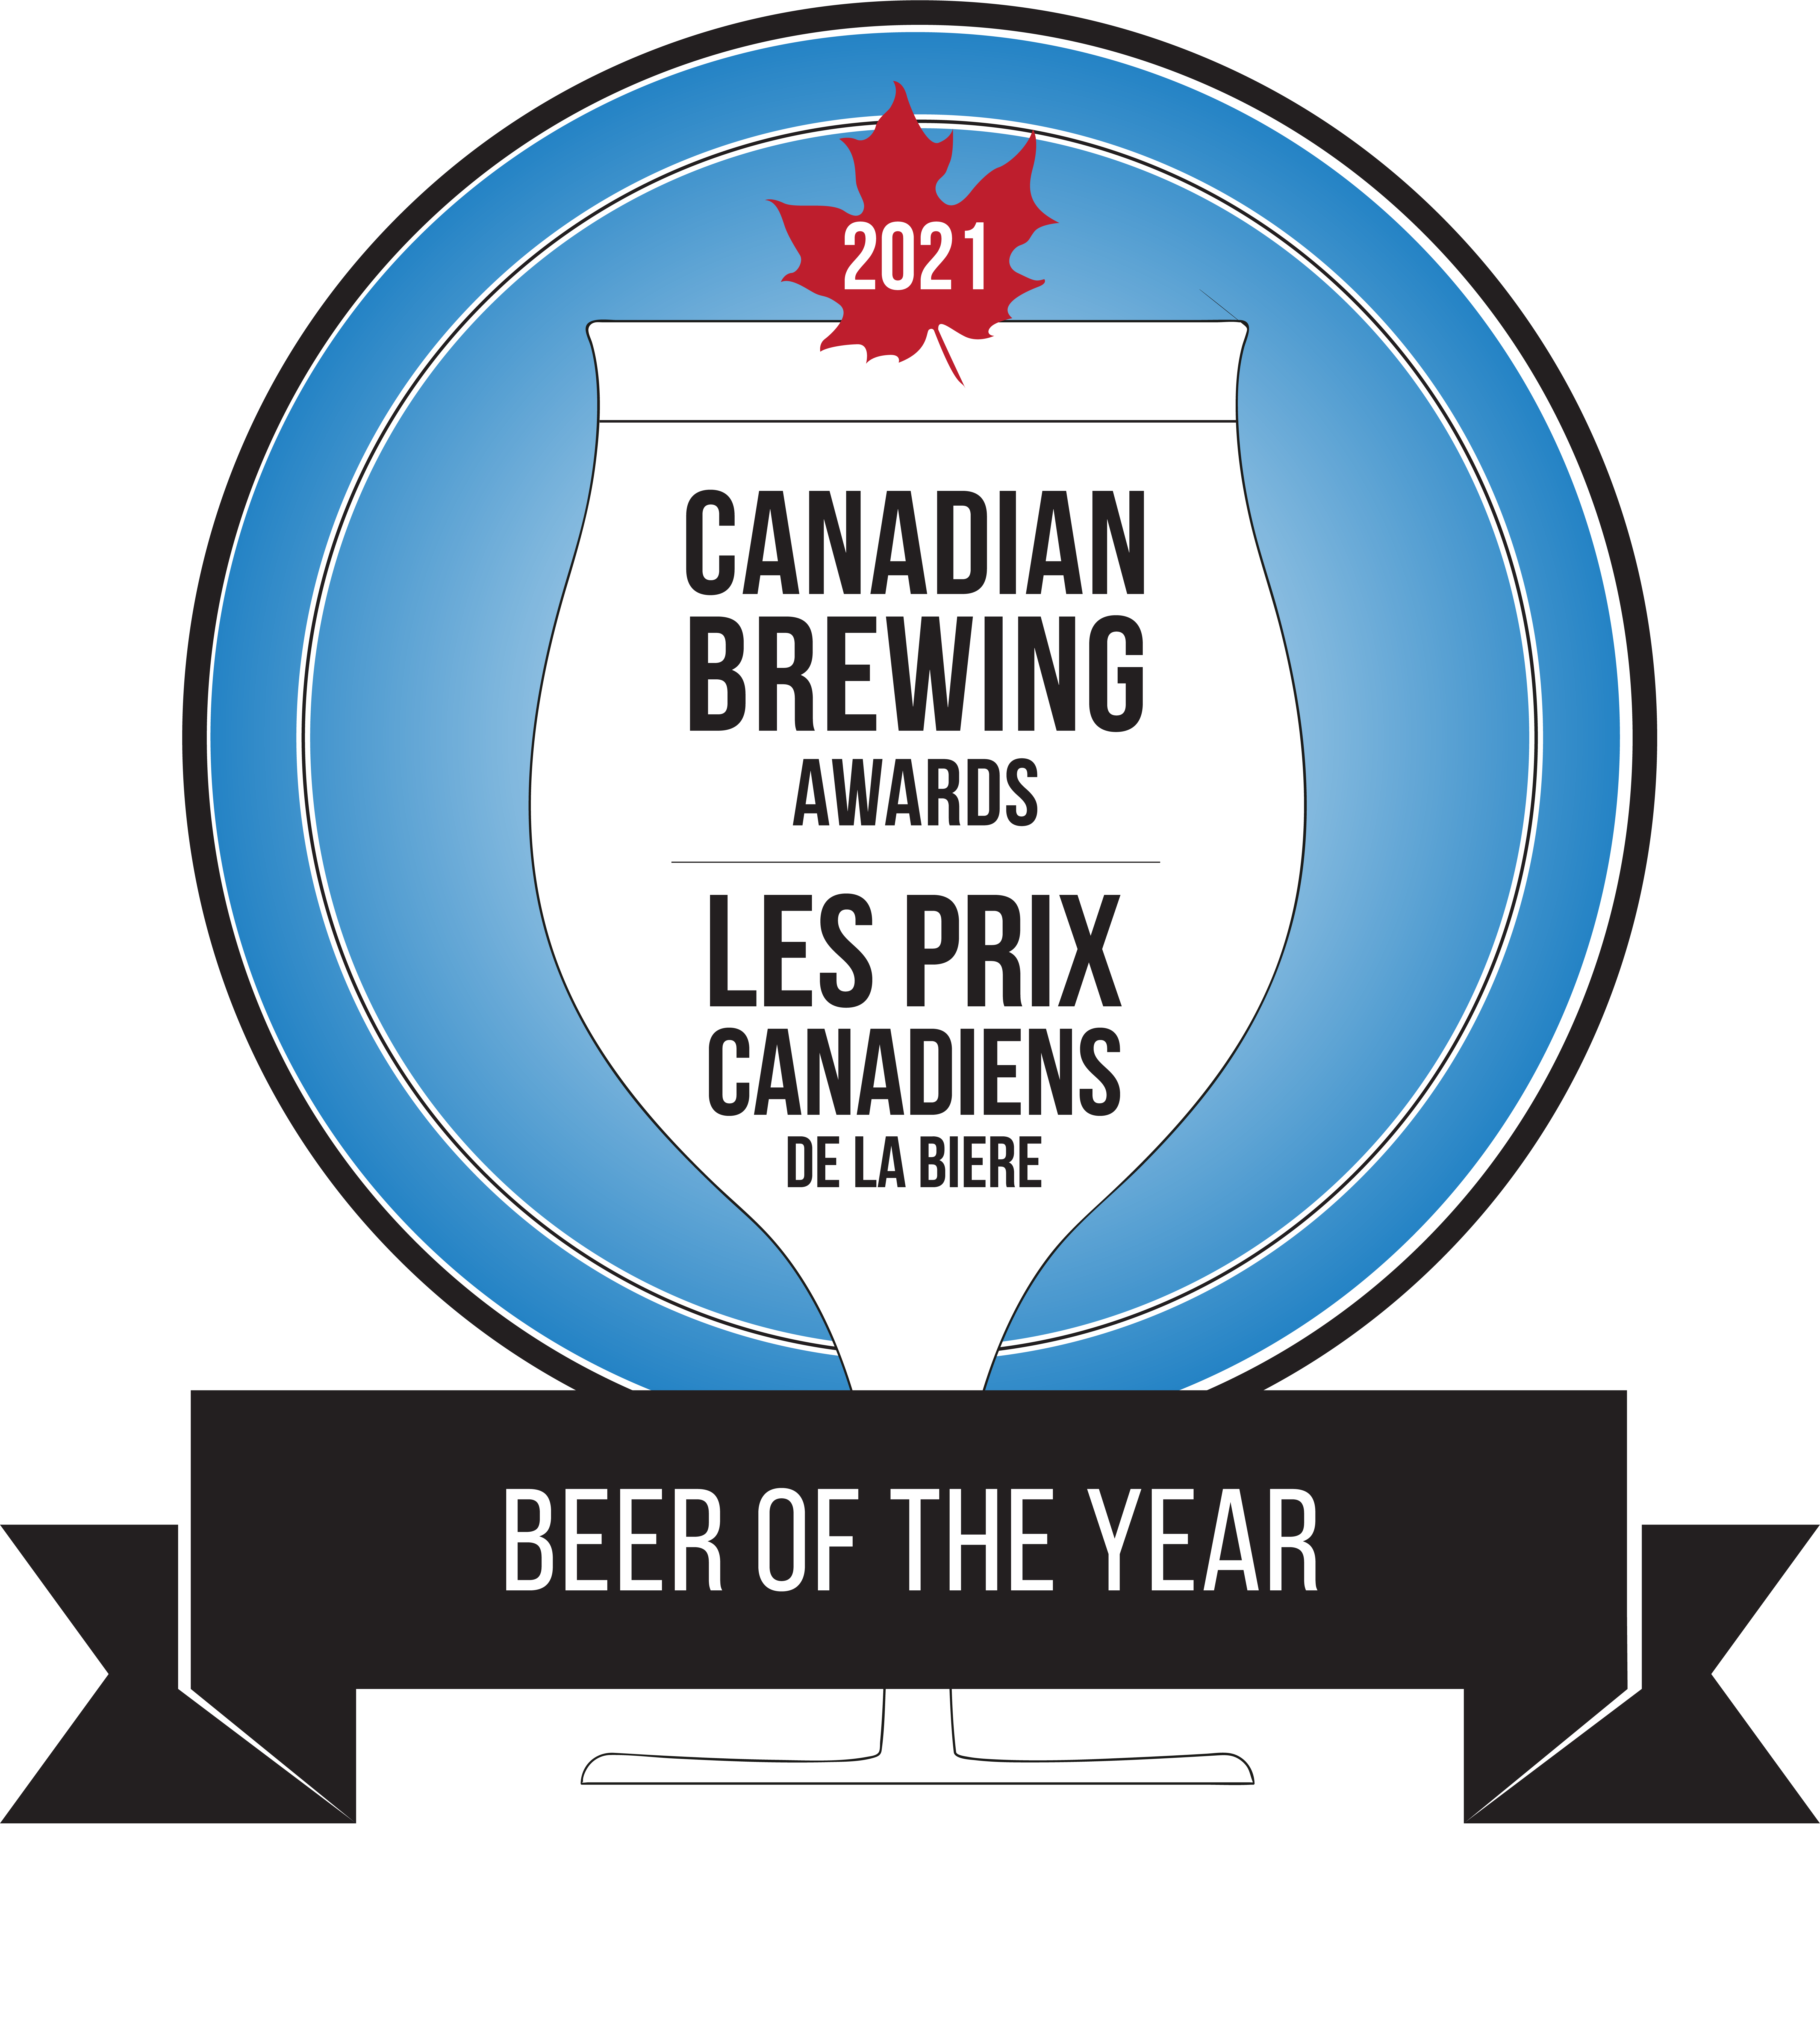 Beer of the Year 2021